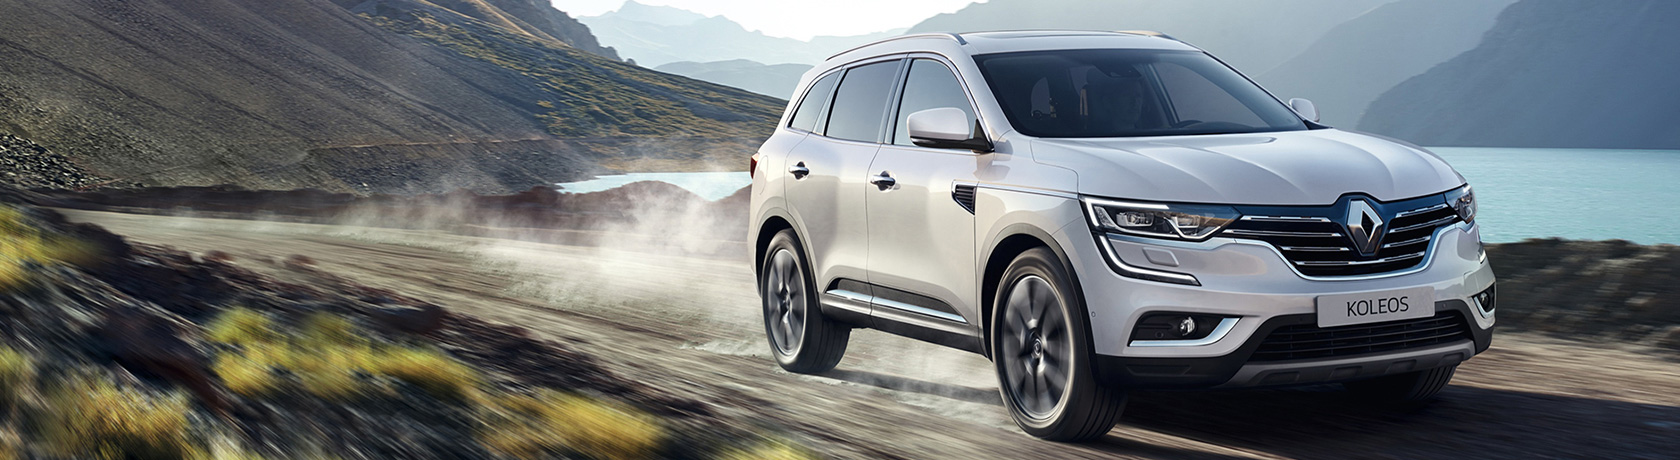 Head off-road in the all new Renault Koleos SUV from Metro renault in Brisbane.